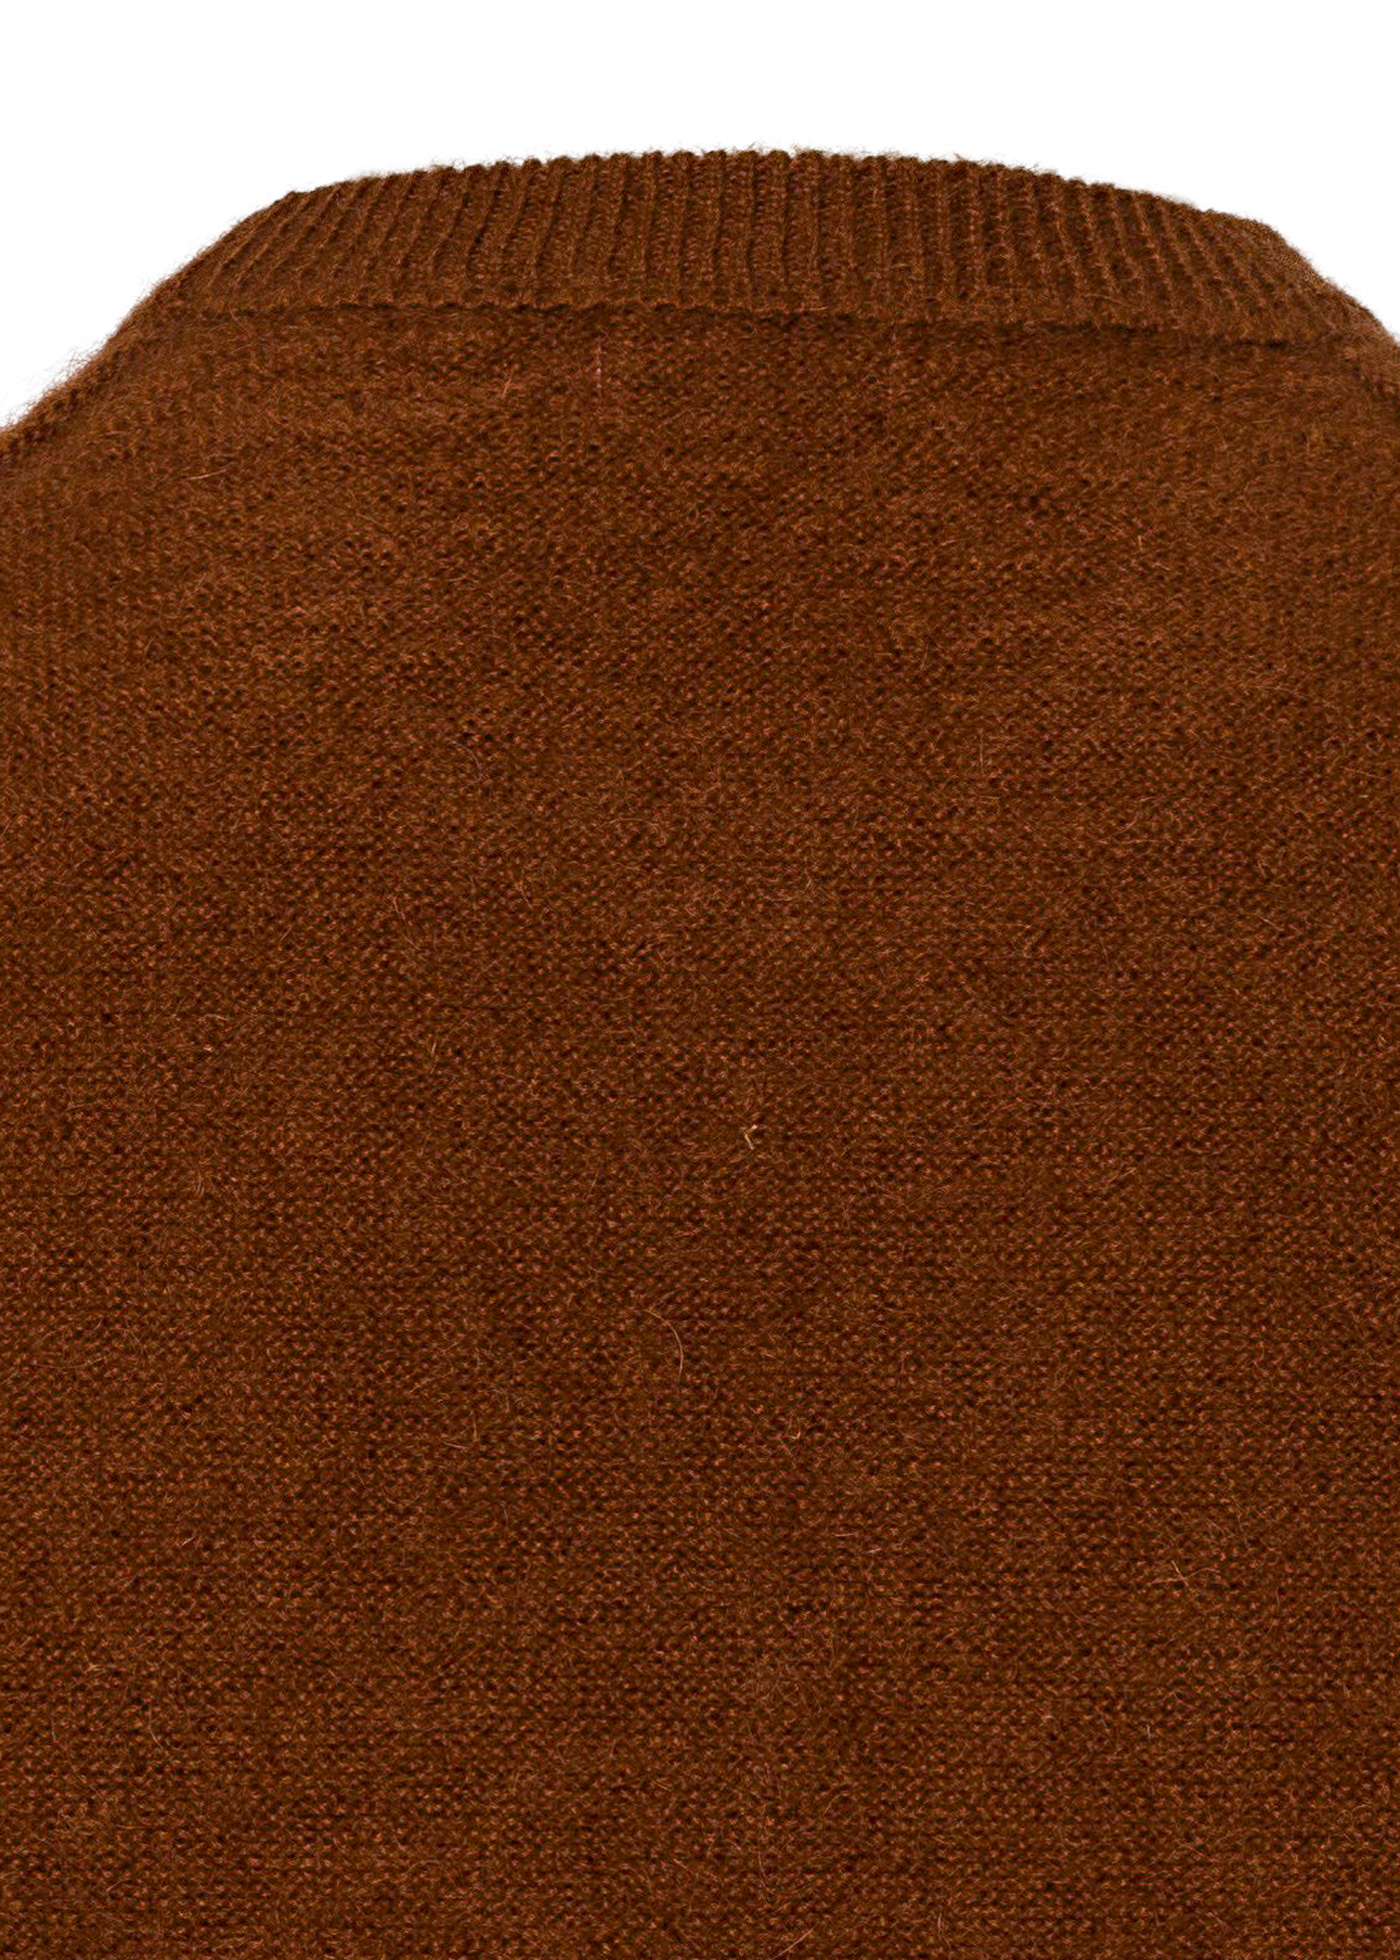 ROUND NECK SWEATER image number 3